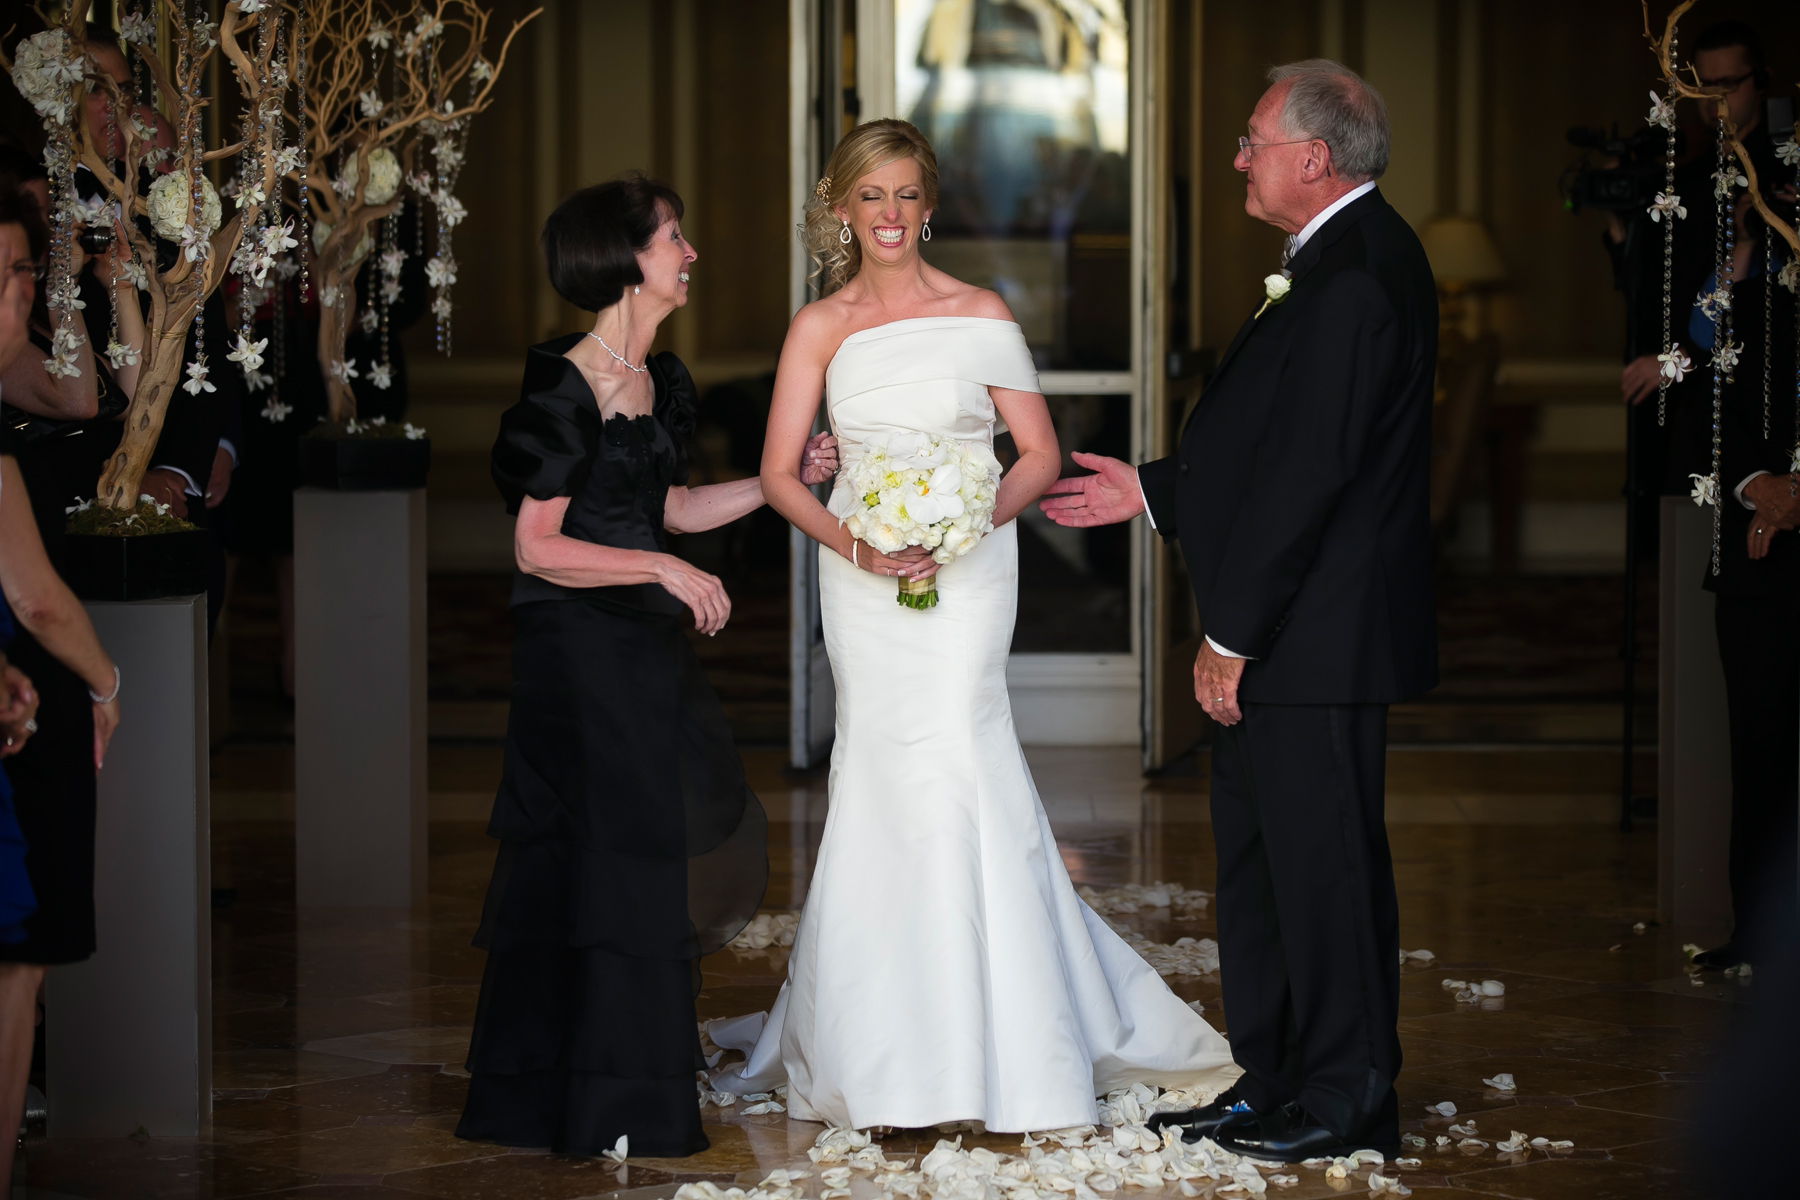 The Bride comes down the aisle, and met her parents half way there.  Wedding Venue: Bellagio Las Vegas.  Location: The Grand Patio. Flowers & Decor by Naakiti Floral . Photo by www.ronmiller.com . Las Vegas Wedding Planner: Andrea Eppolito Events .